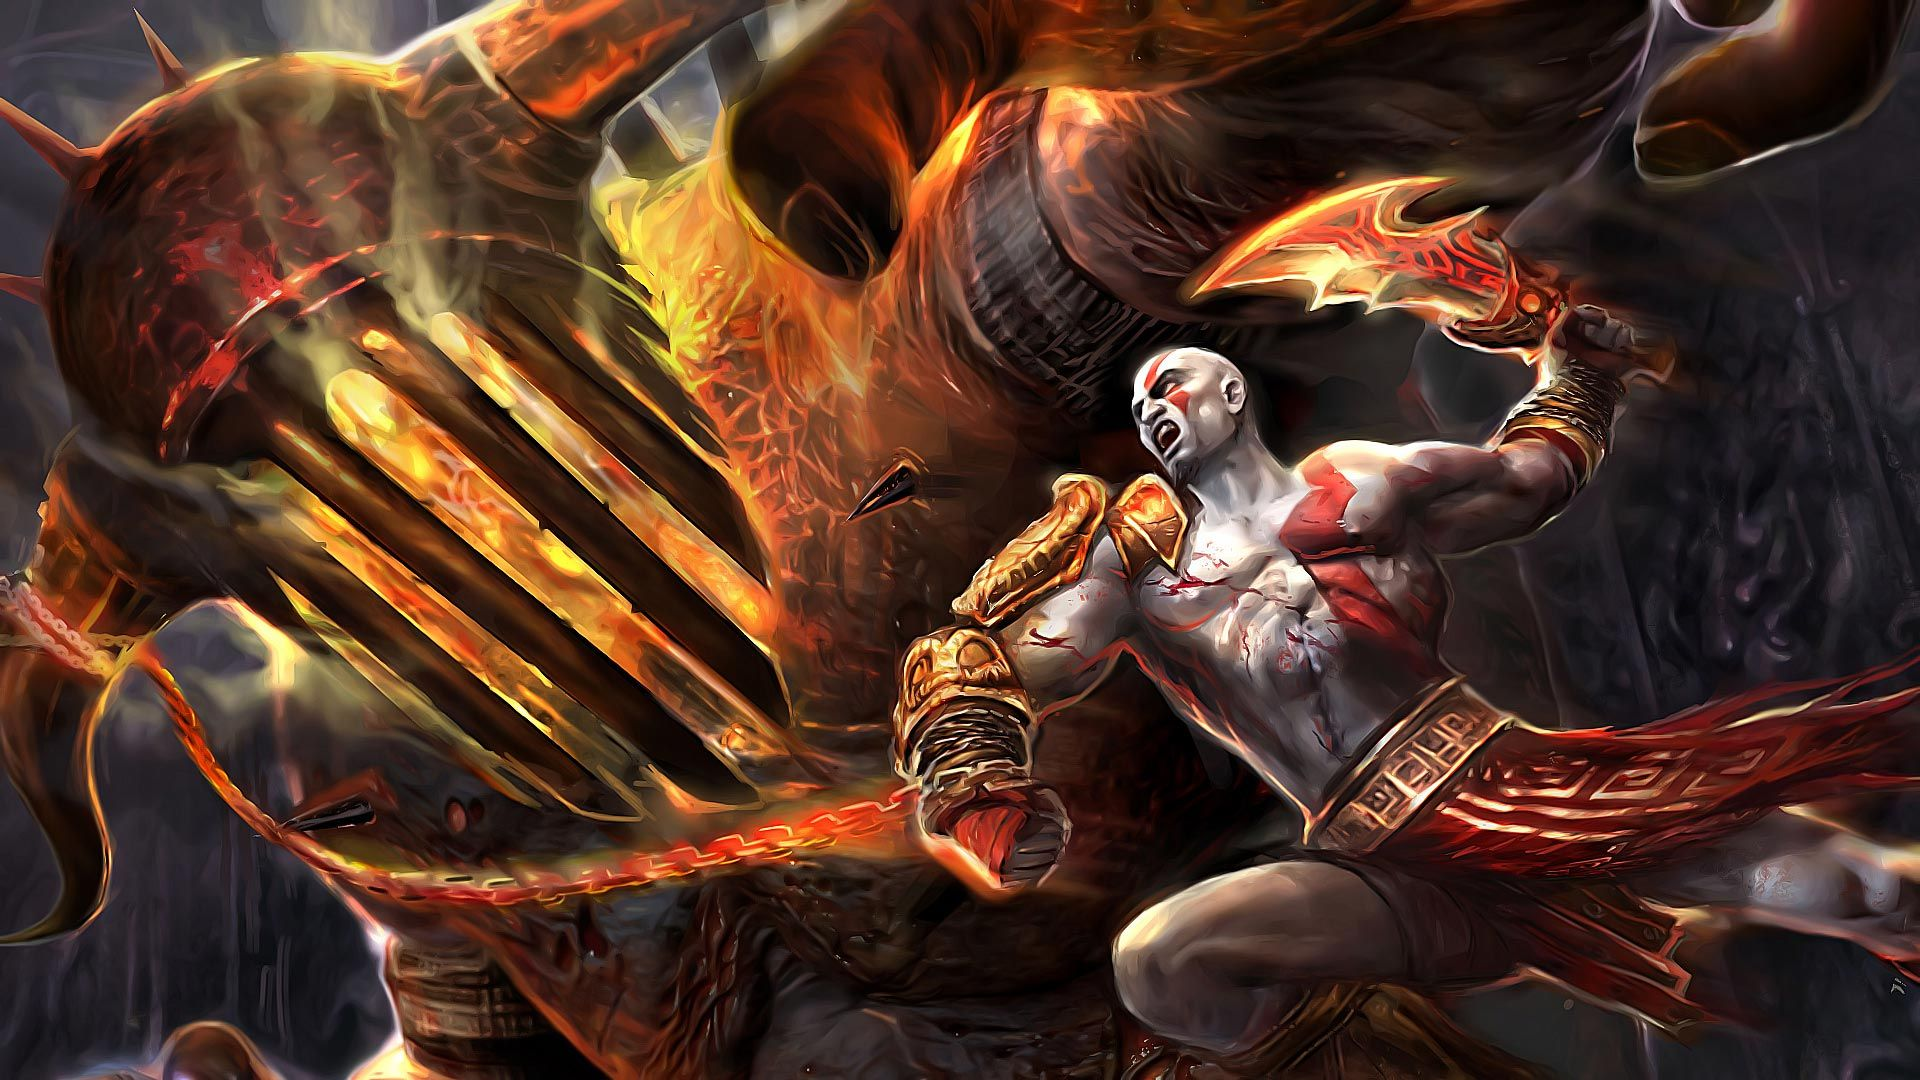 god of war wallpaper hd images photo ideias para a casa